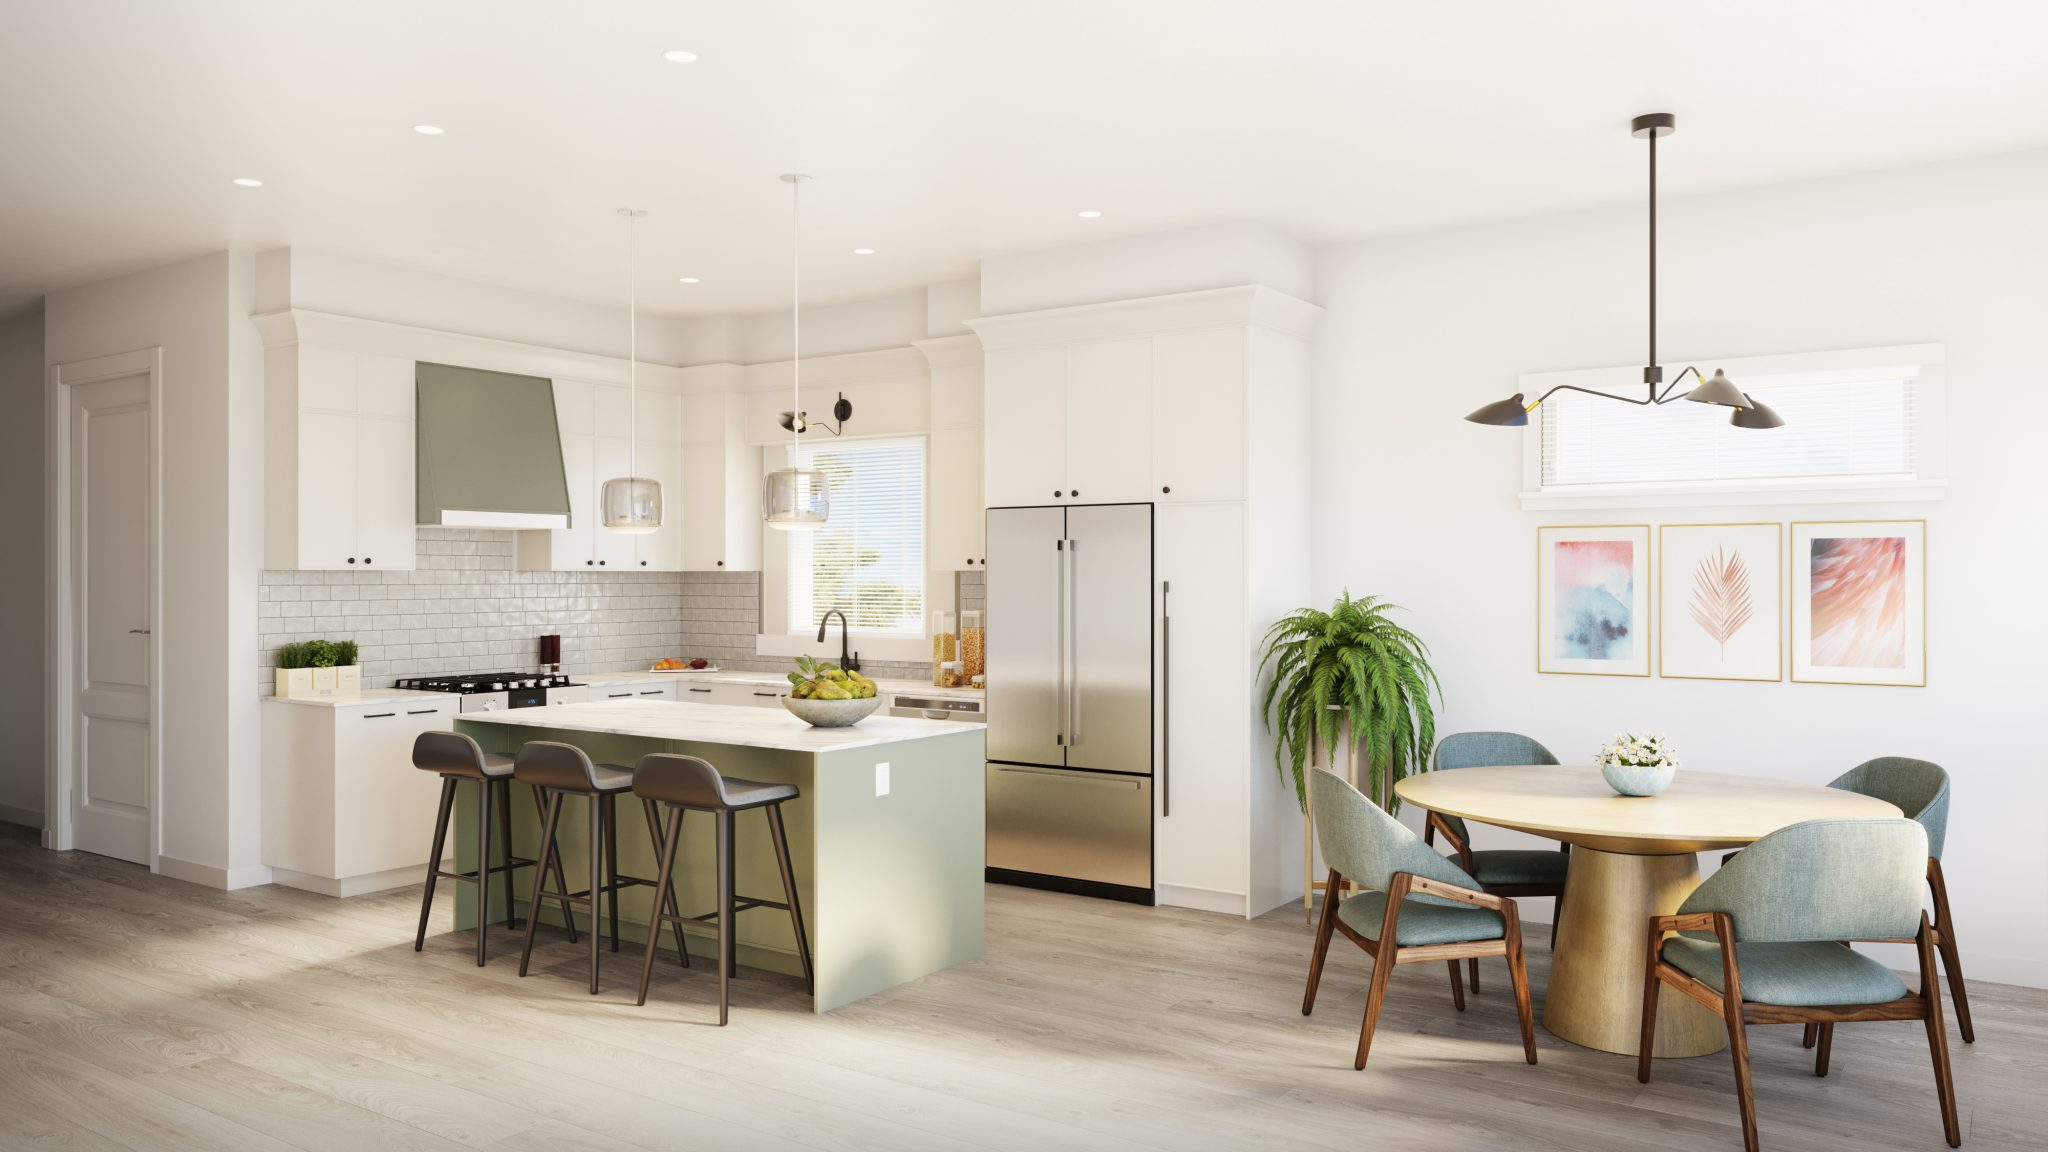 exclusive community of just 66 master on main view homes stands apart in every way.